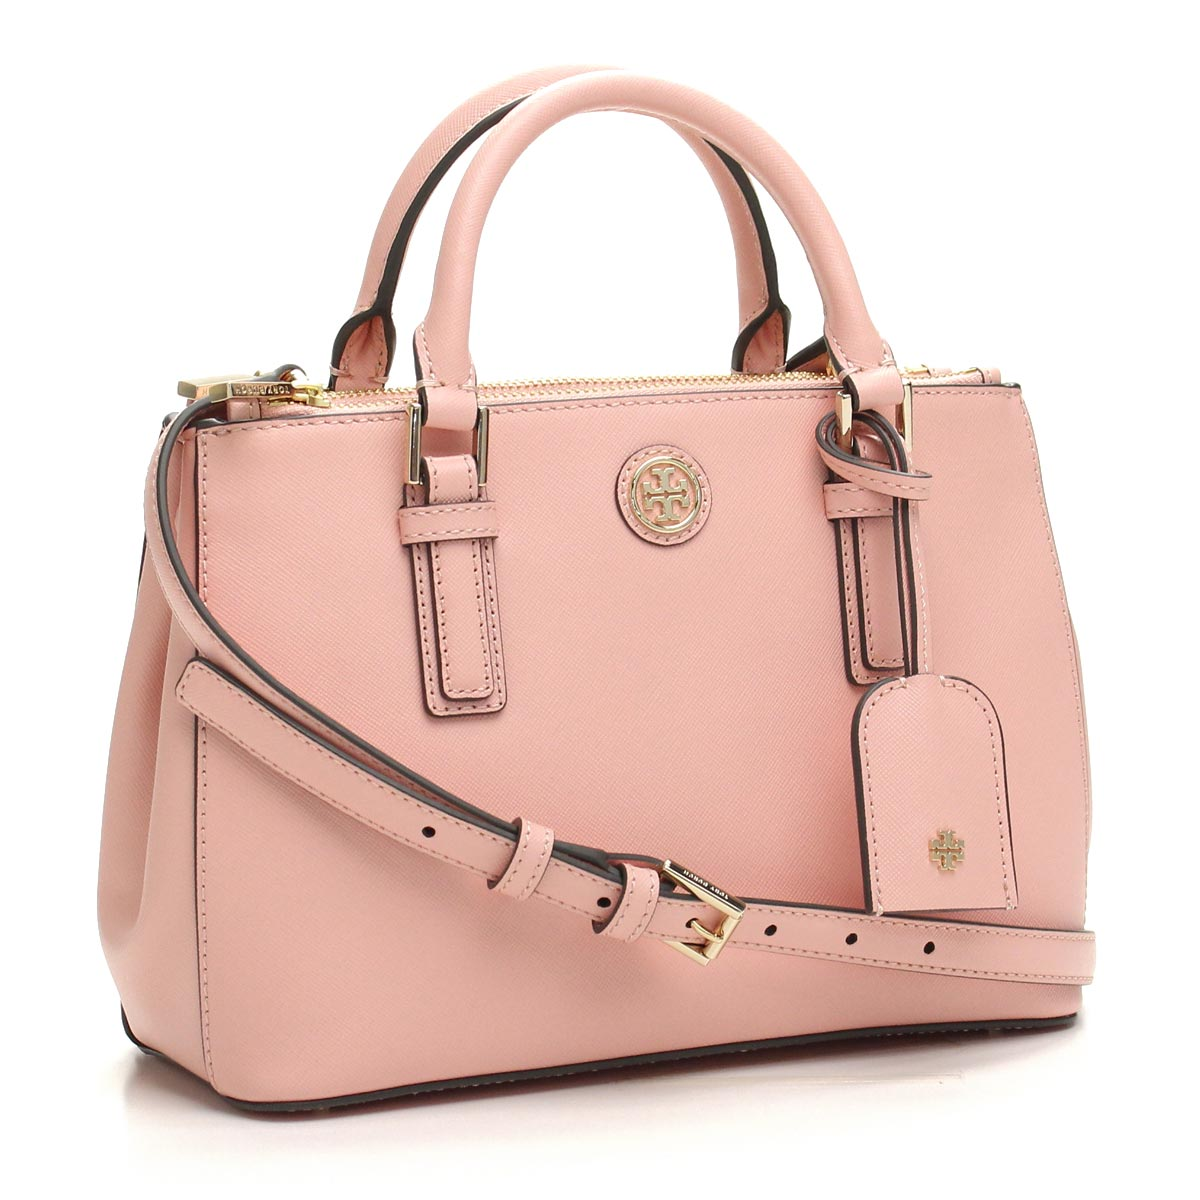 Hit The Total Brand Whole Tory Burch Robinson Saffiano Handbag 659 Rose Sachet Pink Taxfree Send By Ems Authentic A New